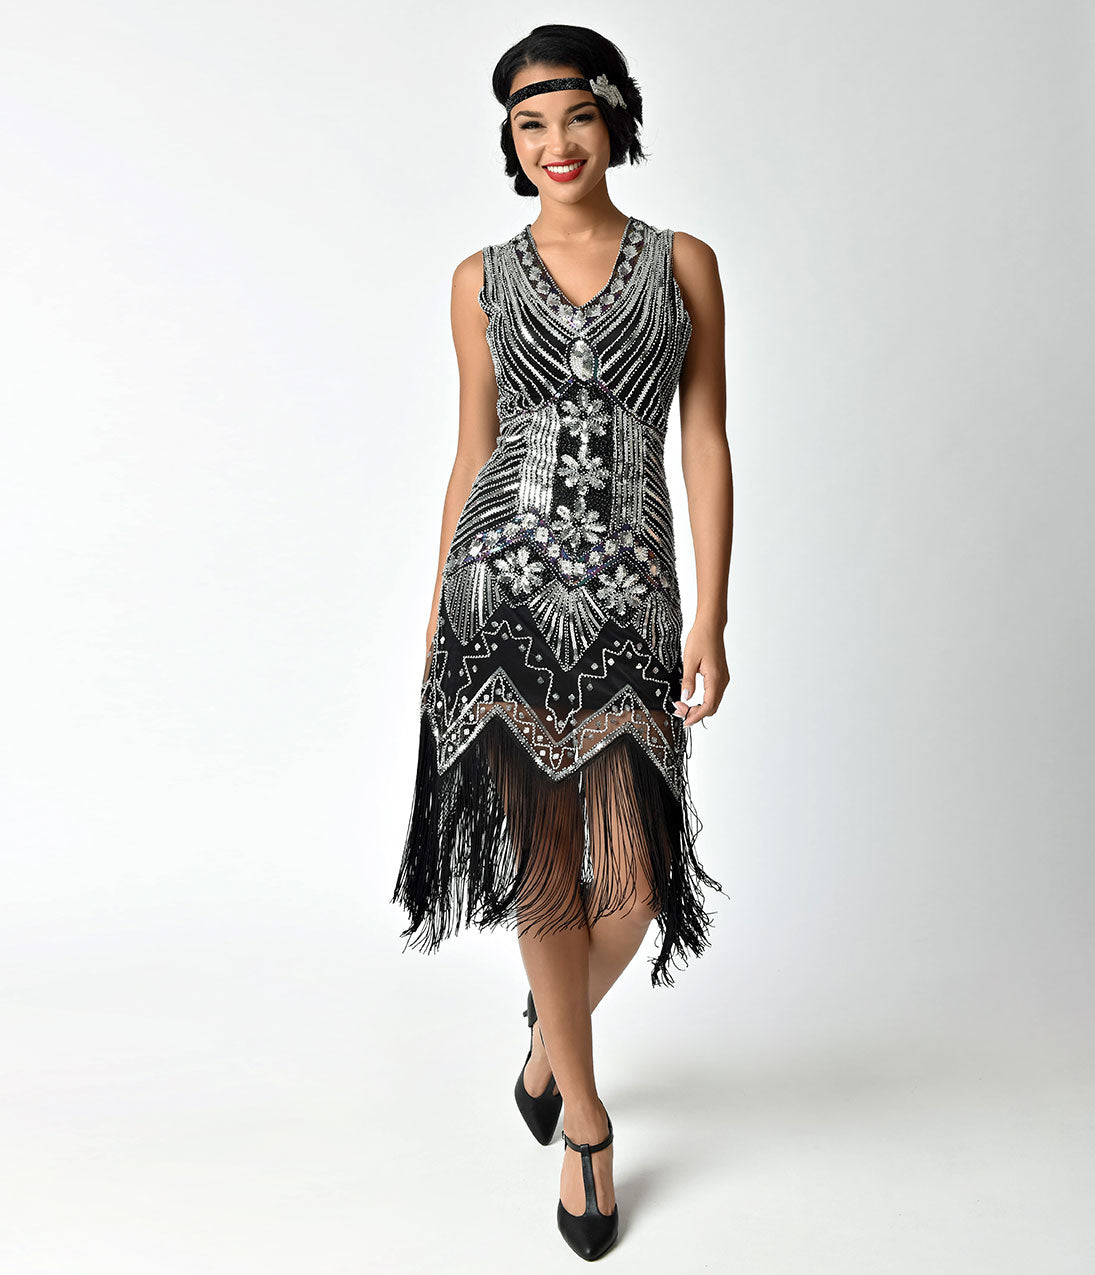 Vintage Wedding Dresses Toronto: Authentic Flapper Dress With Fringe